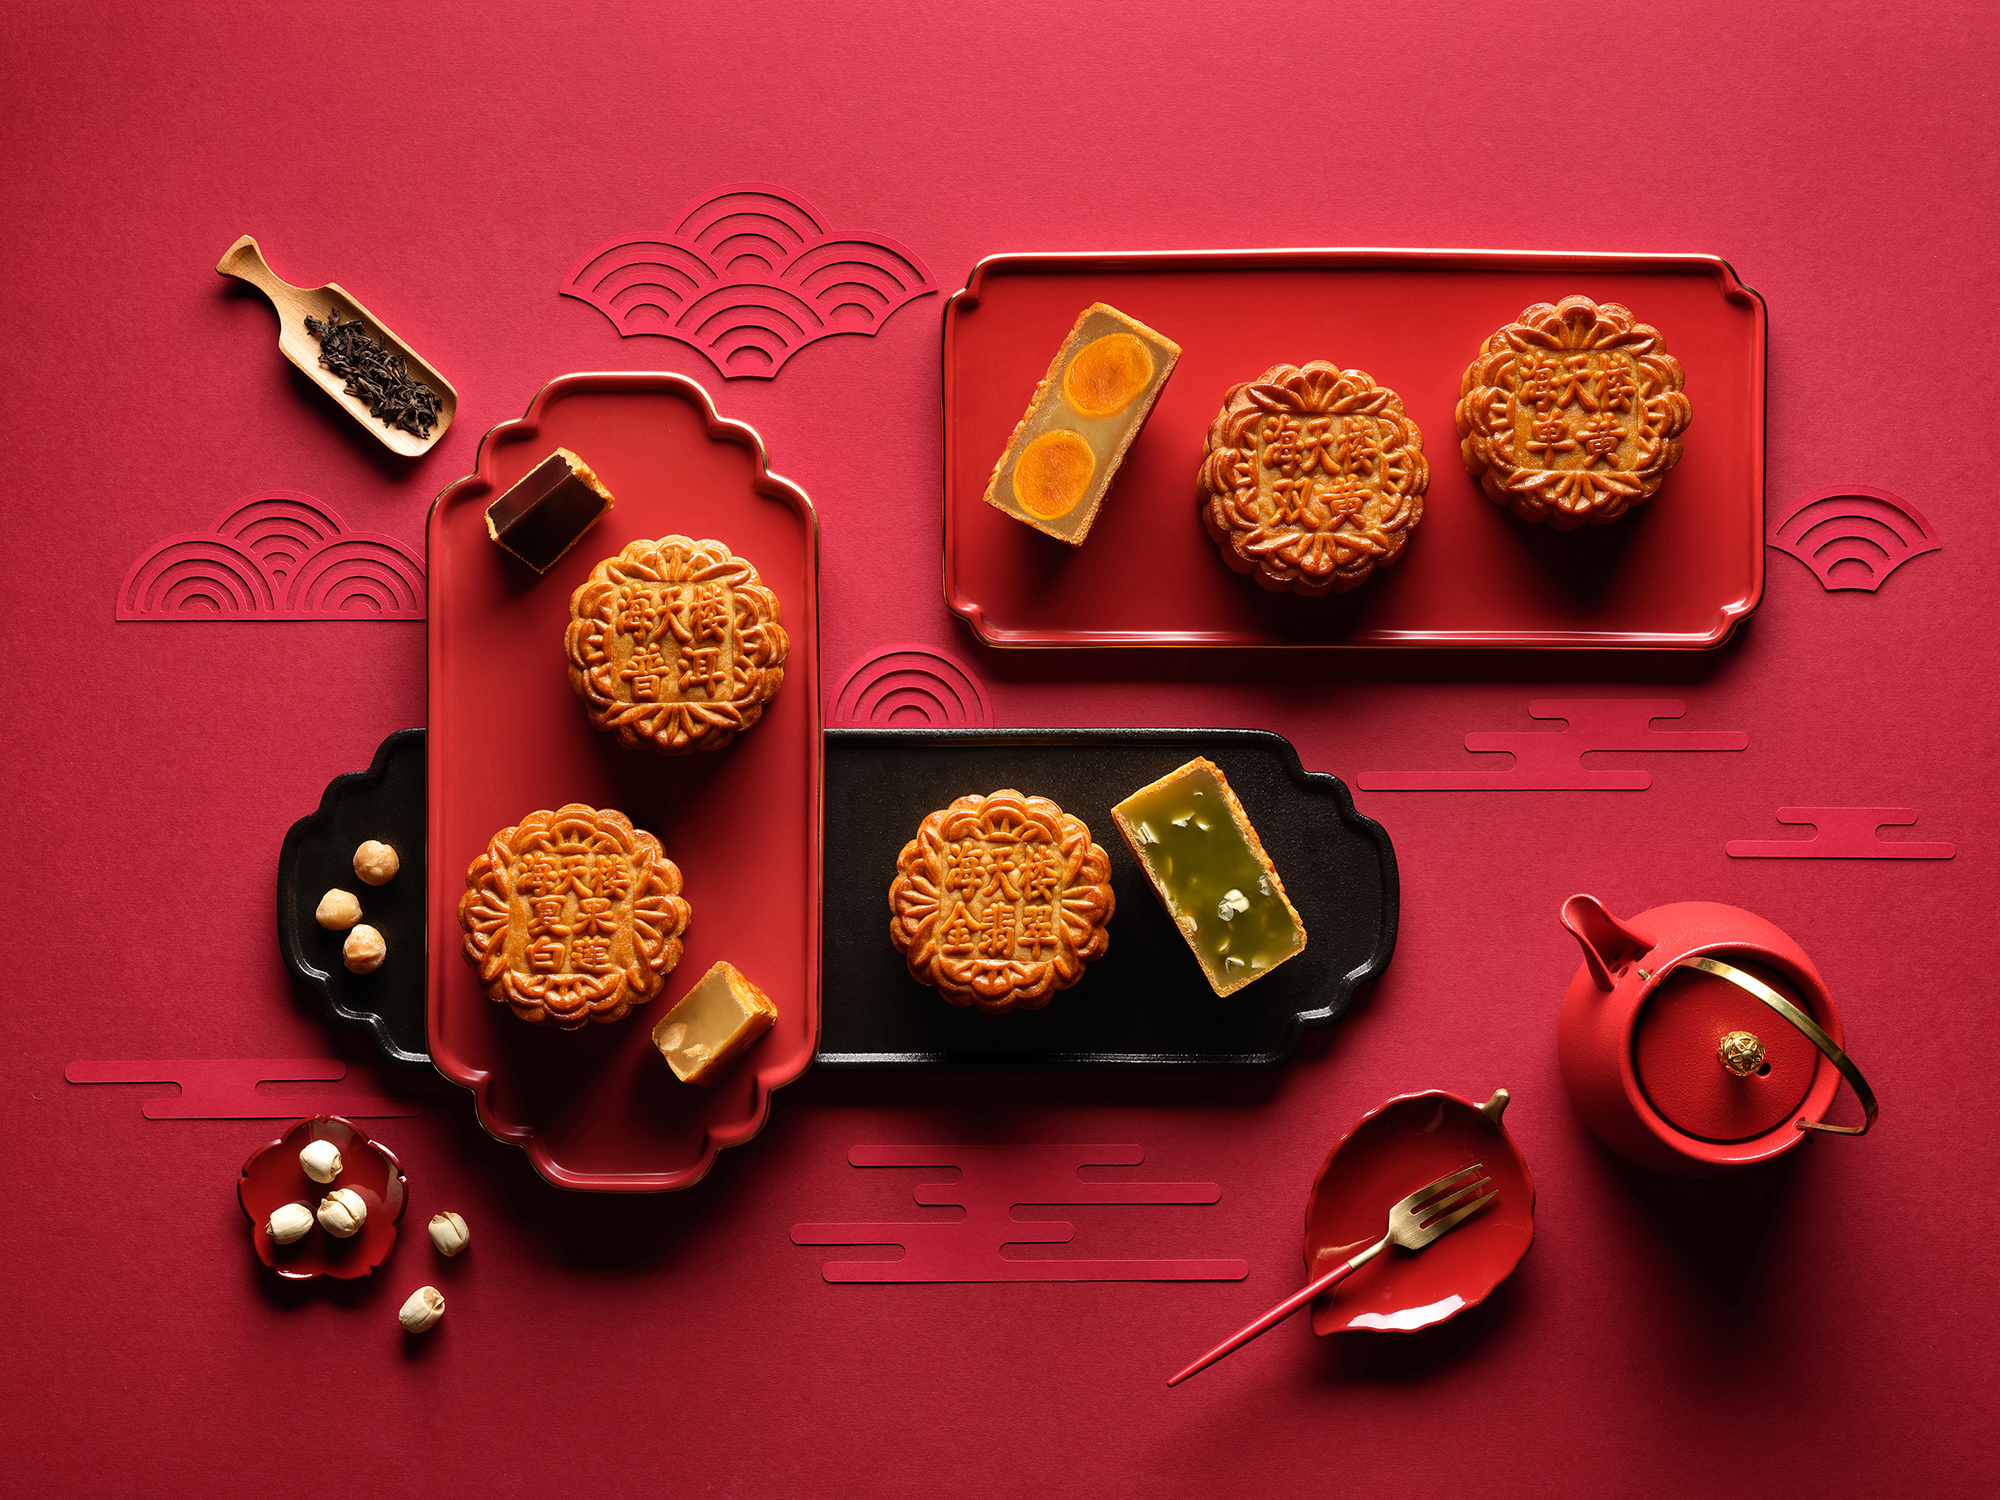 An Exquisite Medley of Handcrafted Mid-Autumn Delights